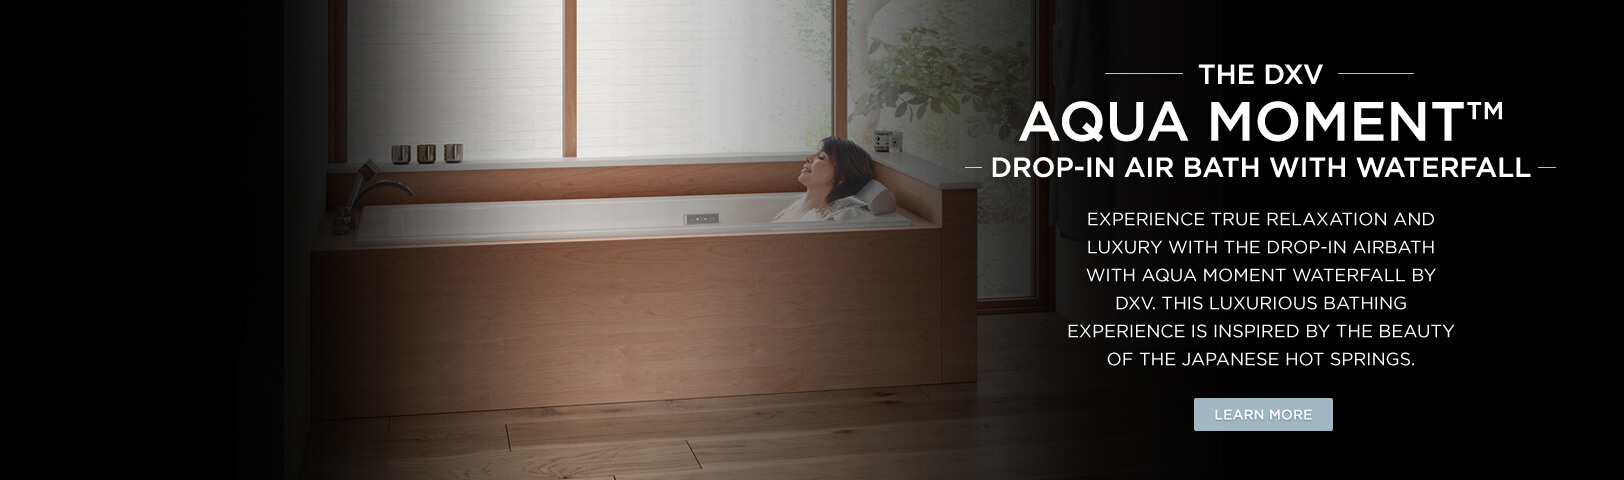 DXV AquaMoment Massage Tub with Waterfall